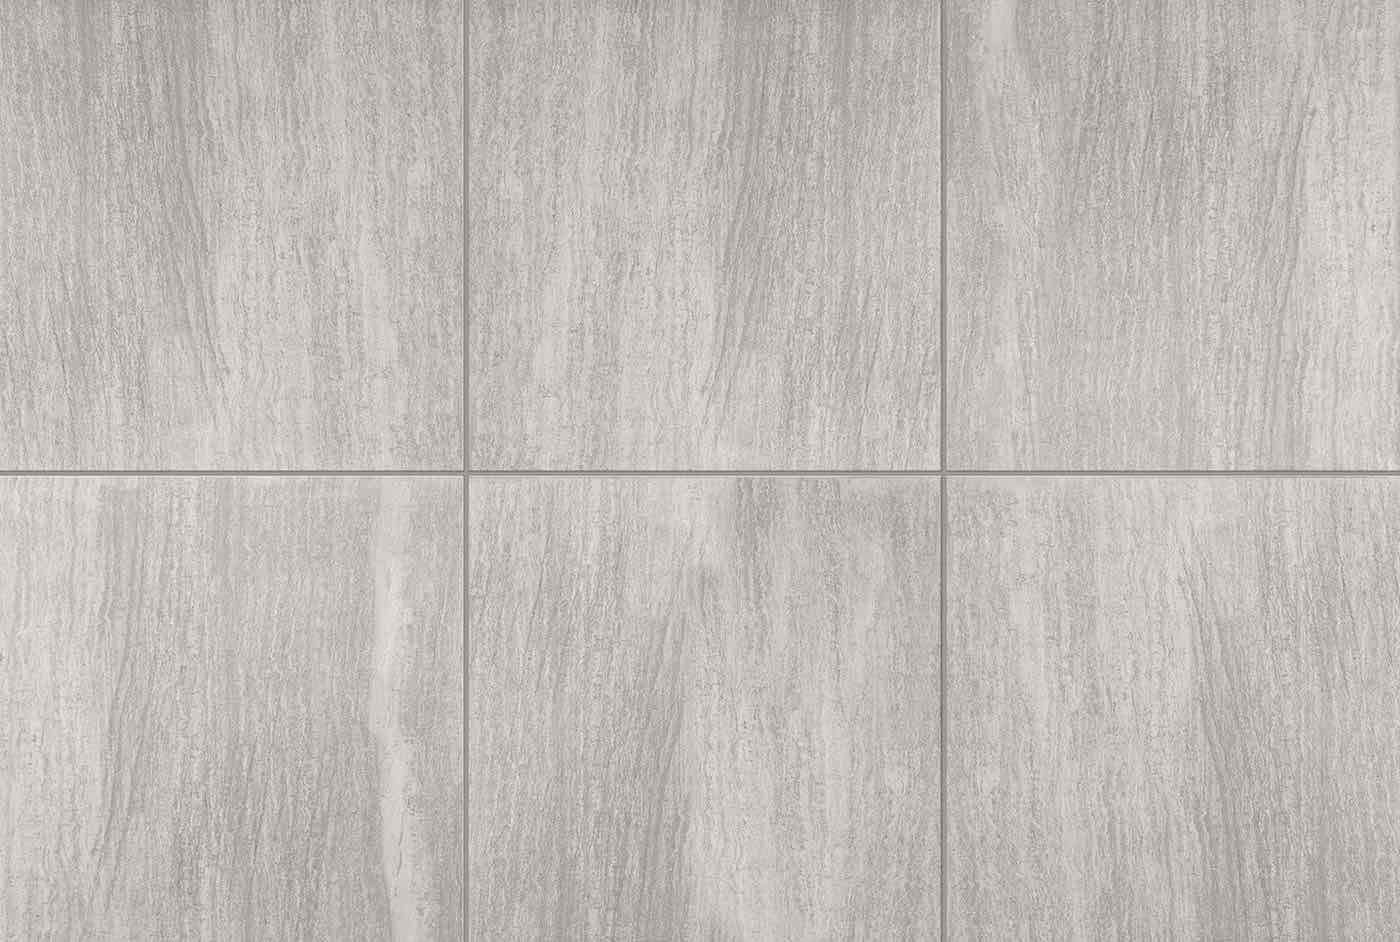 Image Result For Light Grey Stone Tile Texture